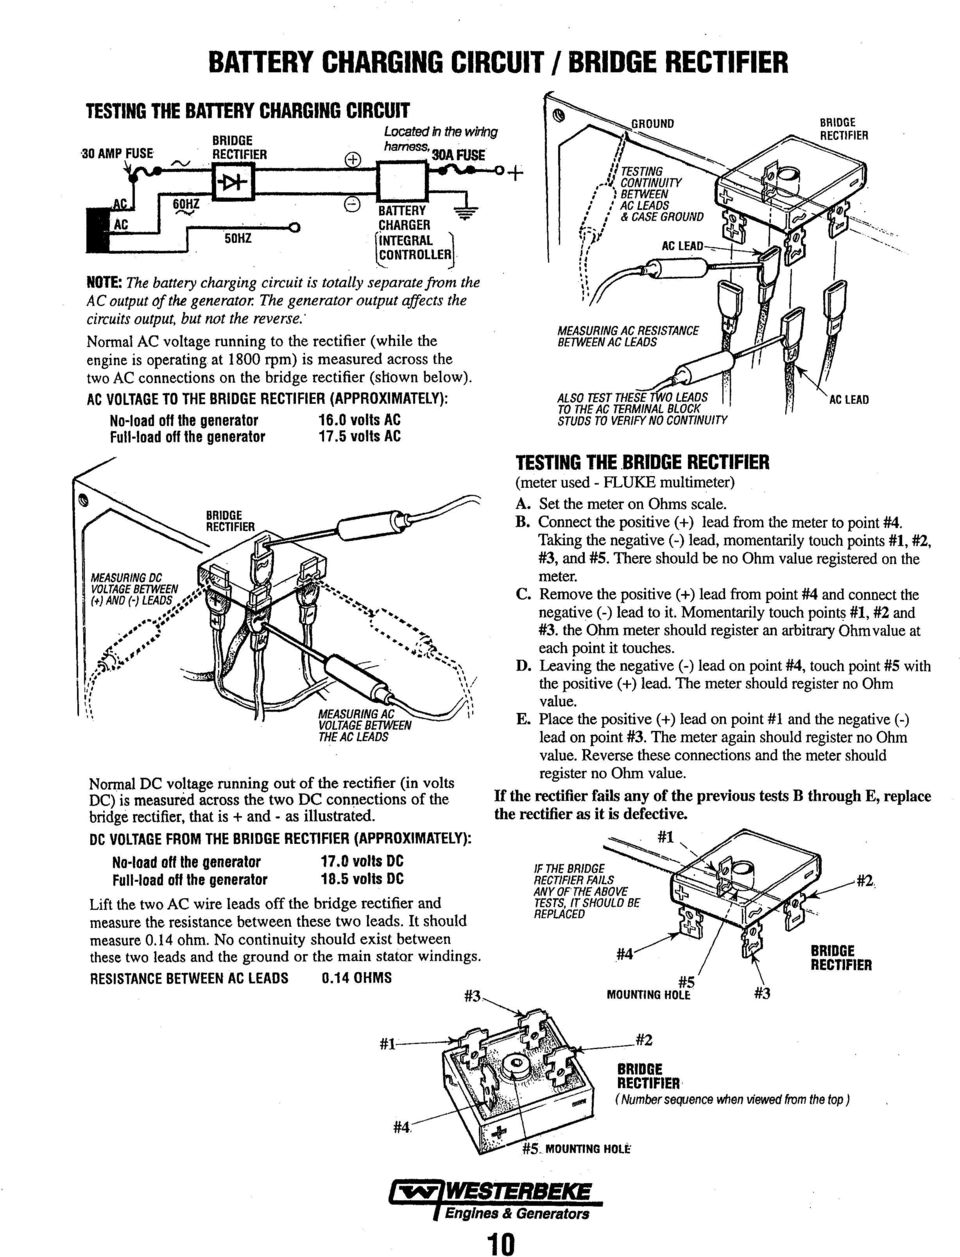 Ac Electrical Testing And Troubleshooting Guide Pdf Stamford Generator Wiring Diagram Battery Charger Normal Voltage Running To The Rectifier While Engine Is Operating At 1800 Rpm